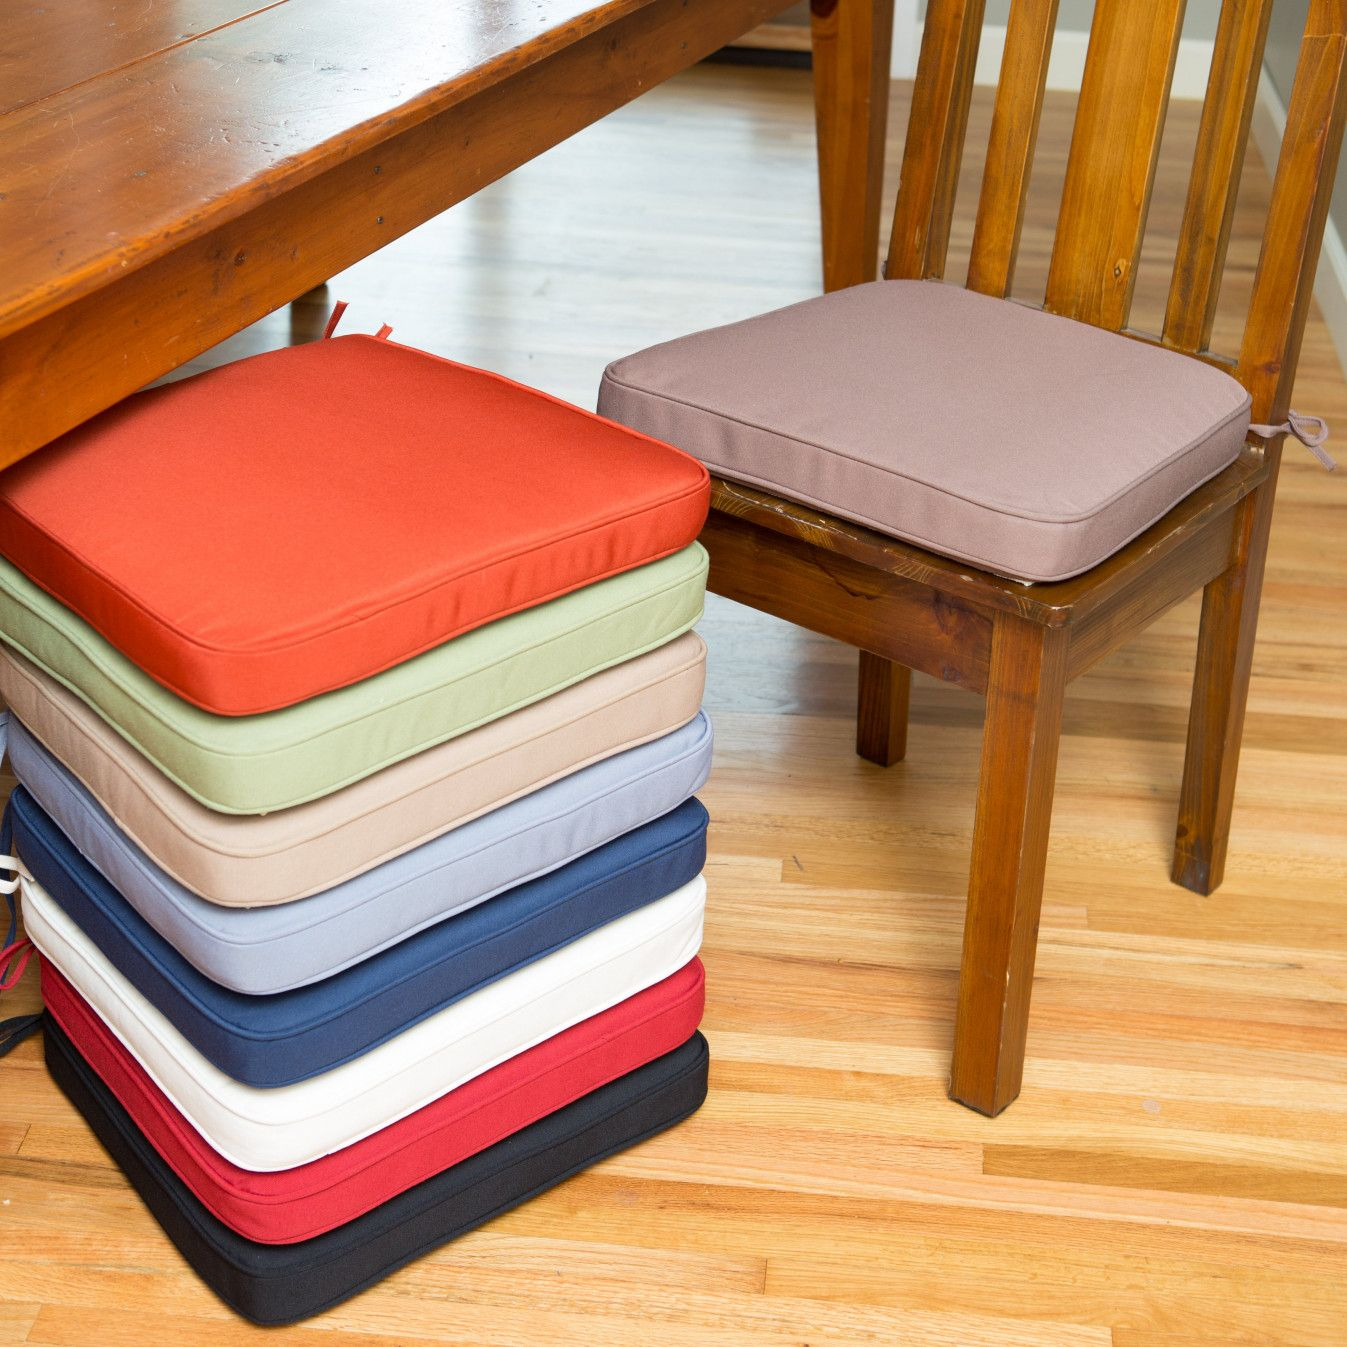 2019 Dining Chair Cushions Pads Modern Italian Furniture Check More At Http Www Ezeebreathe